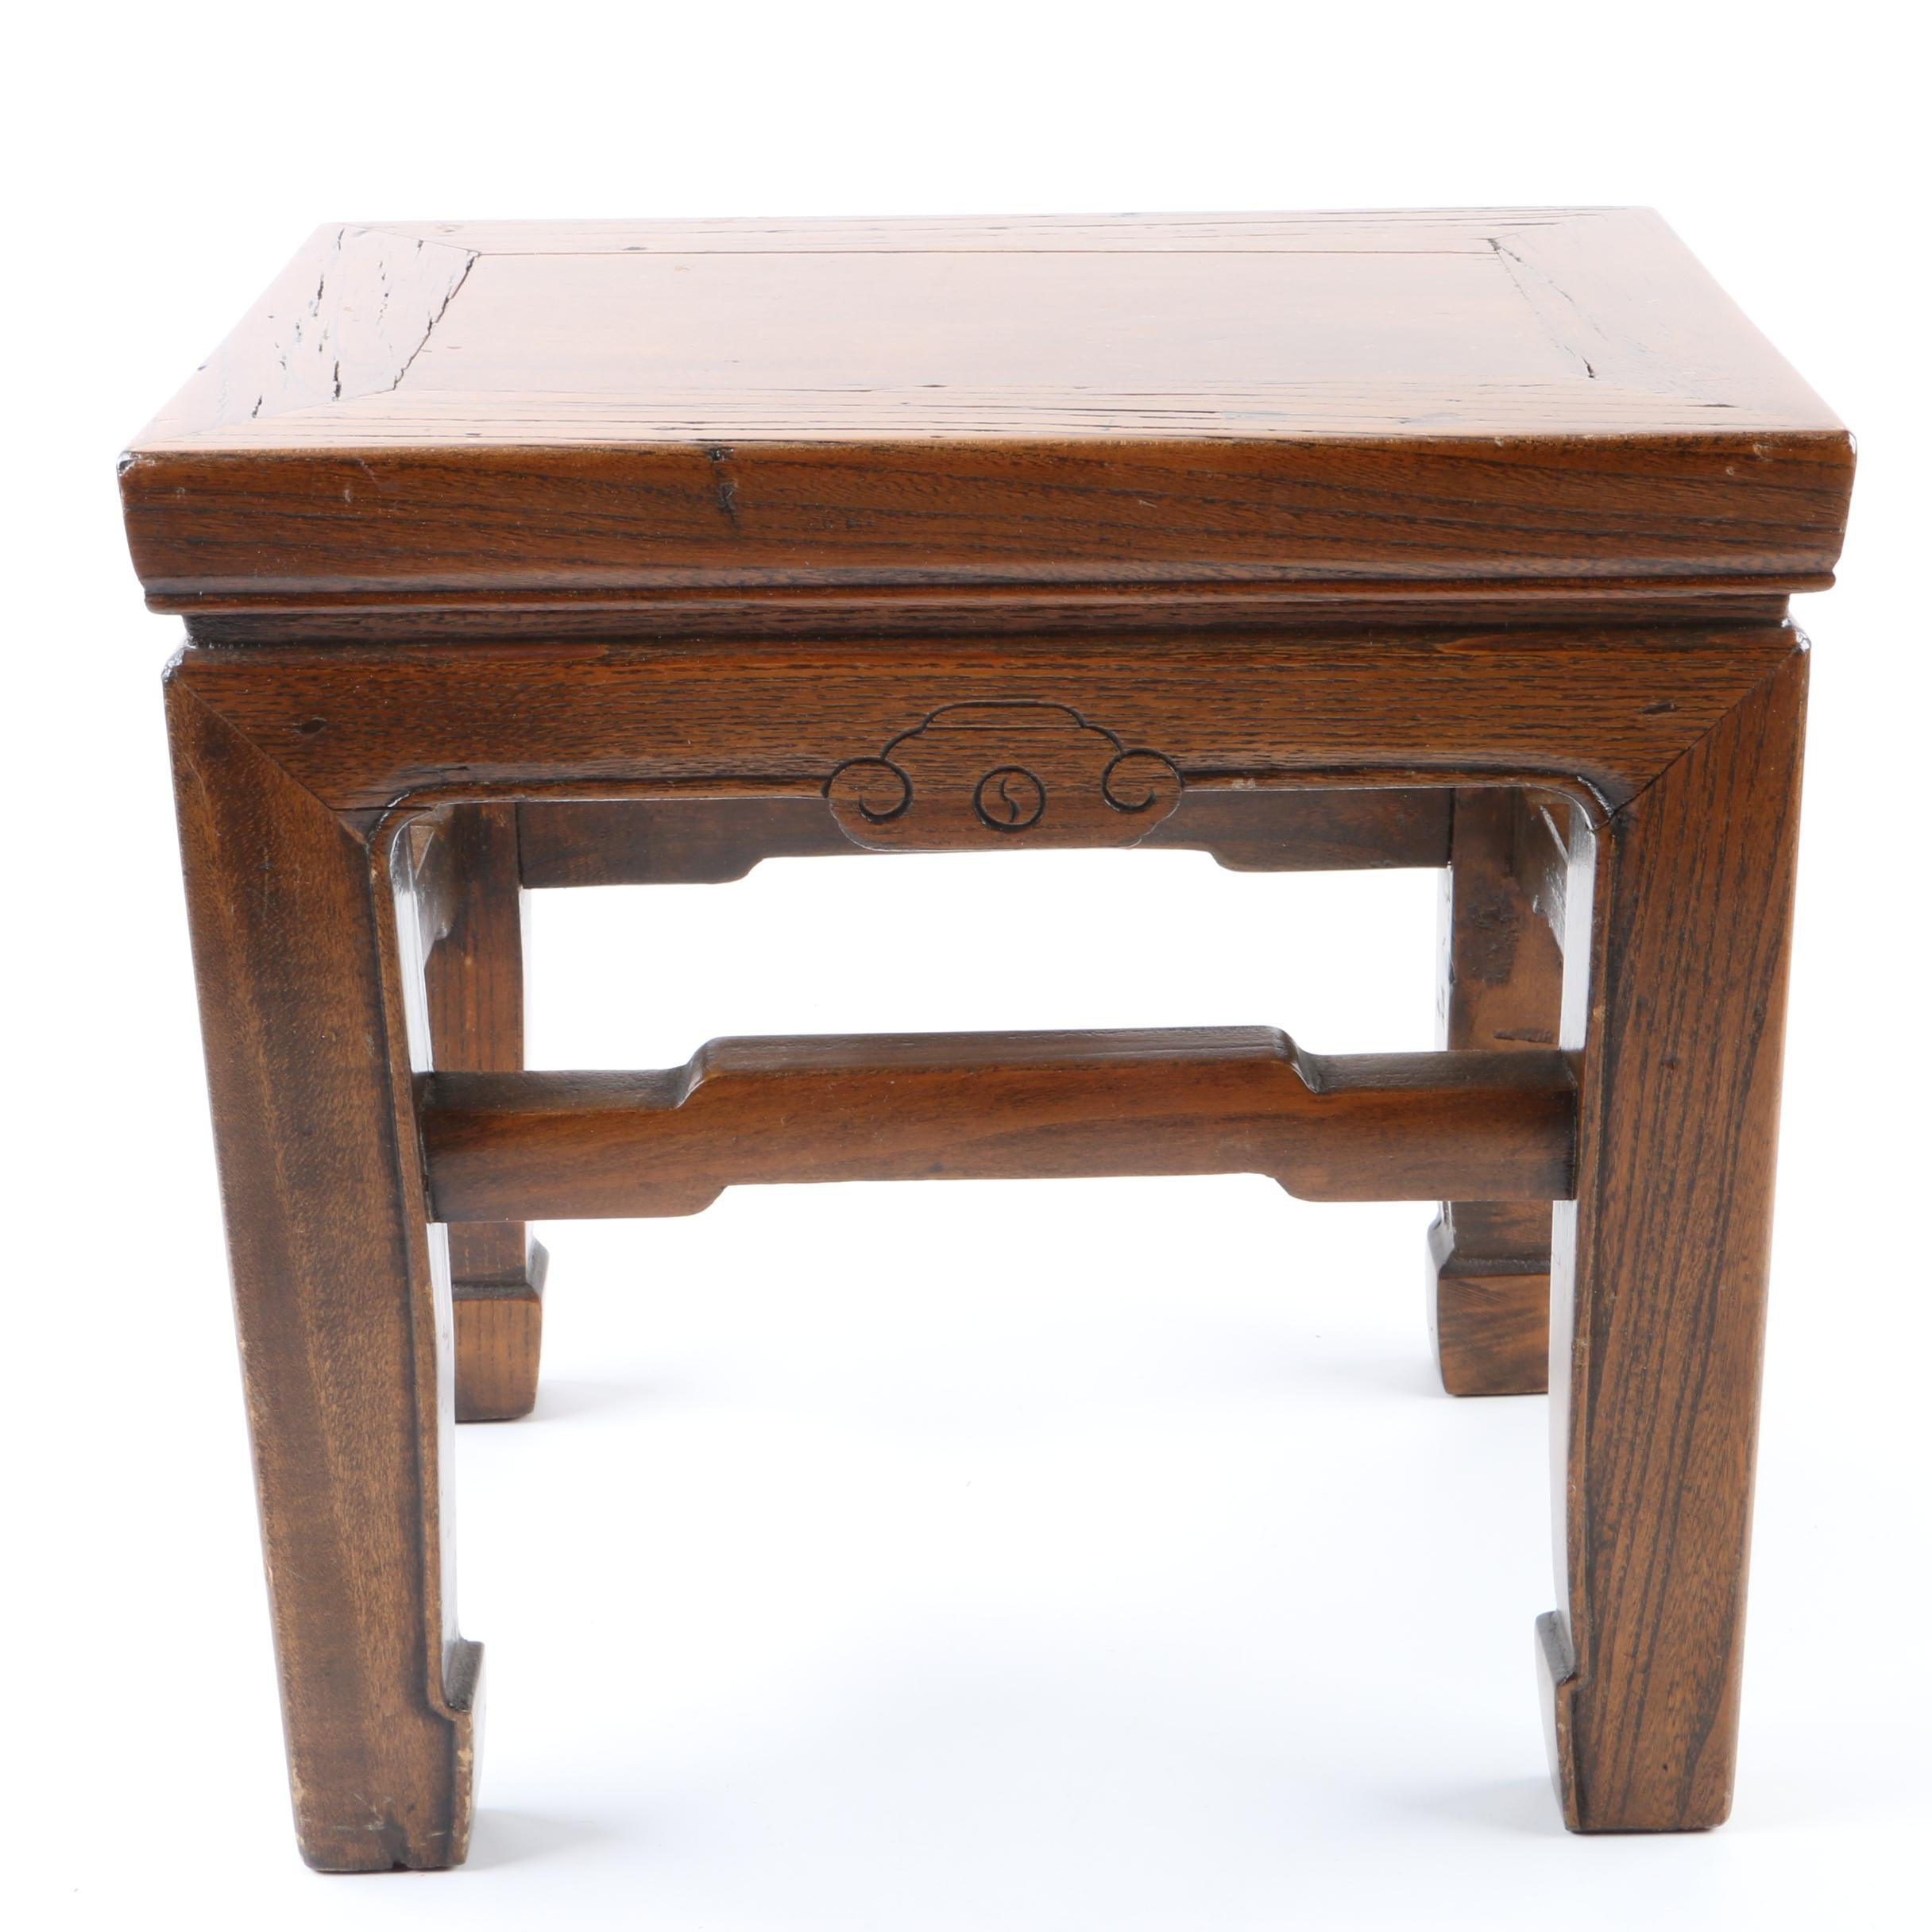 Ming Style Wooden Footstool